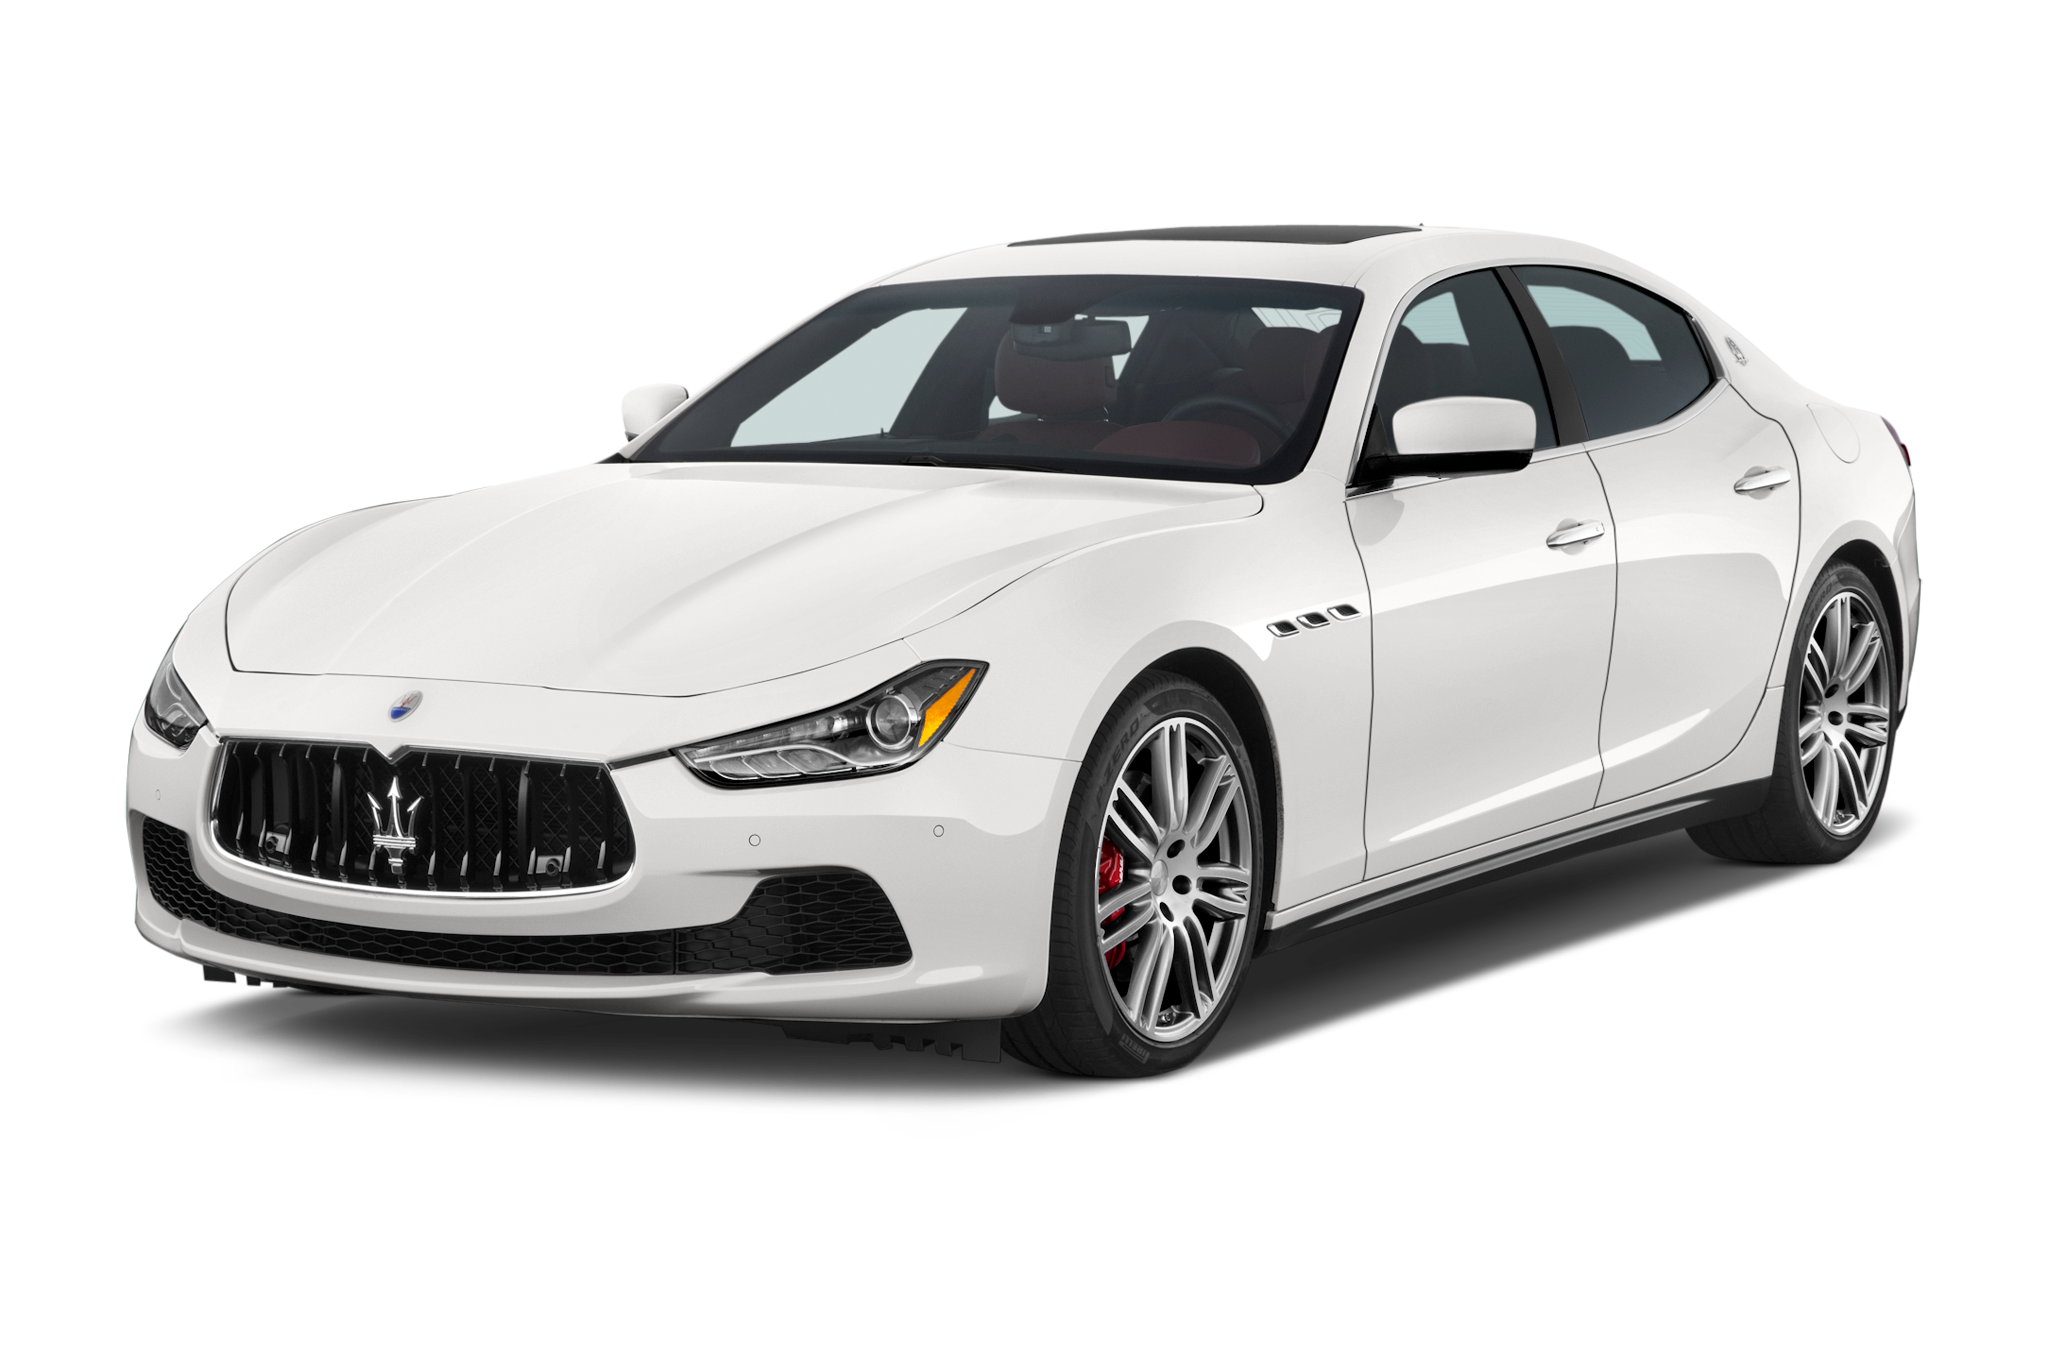 2016 maserati ghibli s q4 one week review automobile magazine. Black Bedroom Furniture Sets. Home Design Ideas